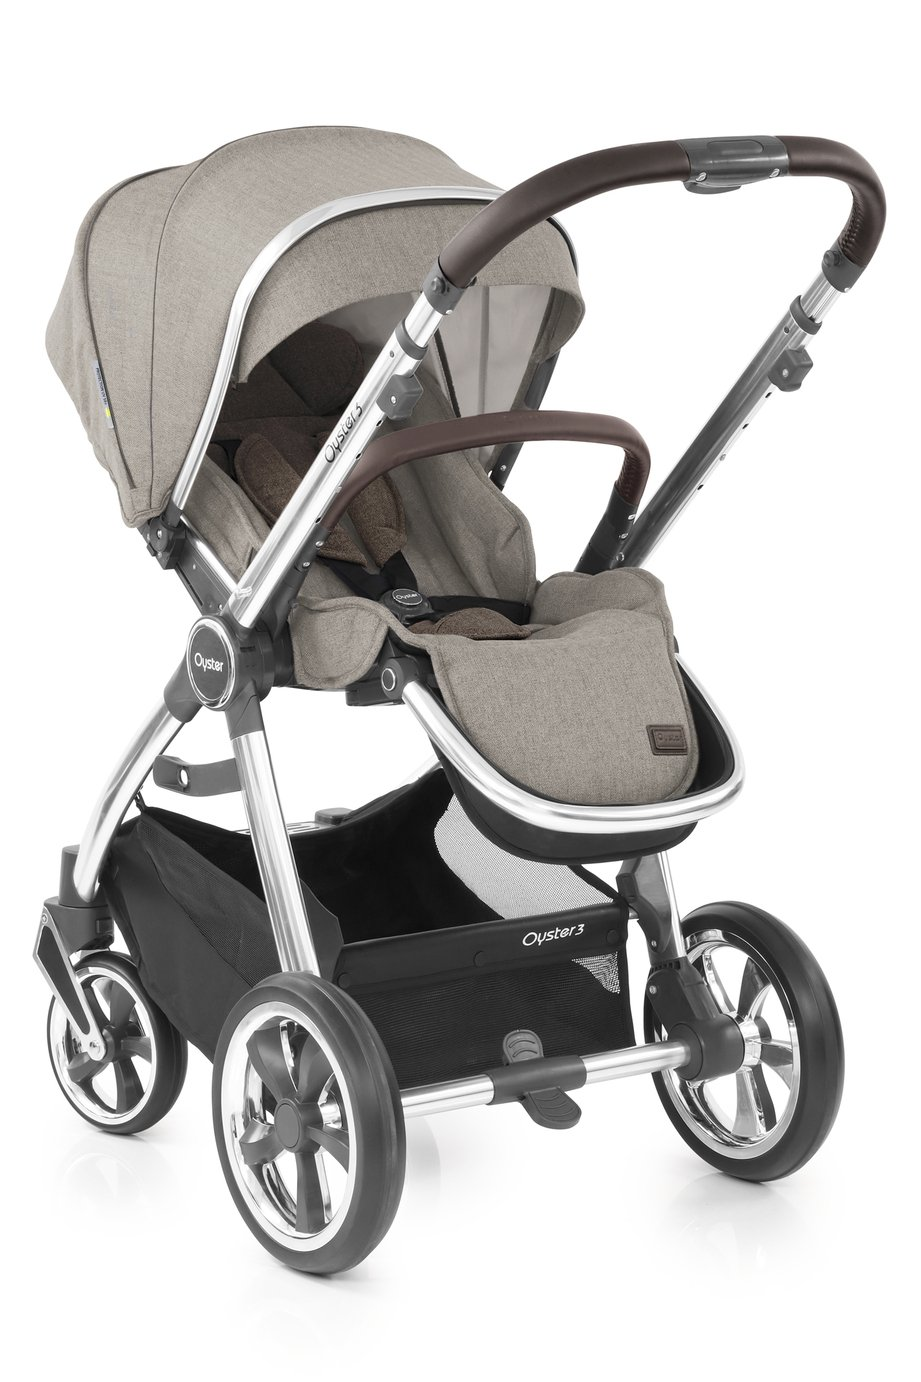 Oyster 3 Pushchair - Pebble